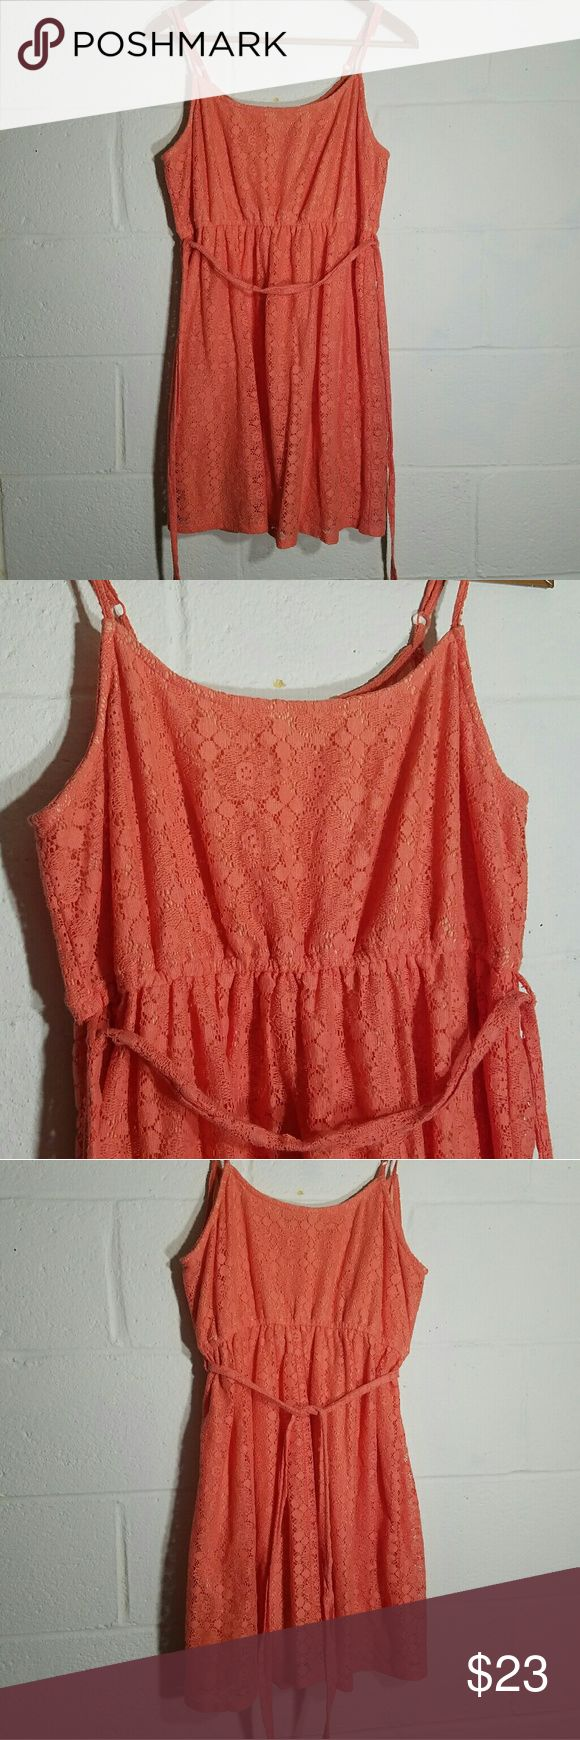 Cutesy coral sundress Like what you see but not the price tag? Feel free to make an offer =) bundle and save! Don't be shy- happy to answer any questions.   Used in very good condition.   It is a large but since the straps are adjustable and the tie under the bust, I would consider it suitable for a small and medium also. Forever 21 Dresses